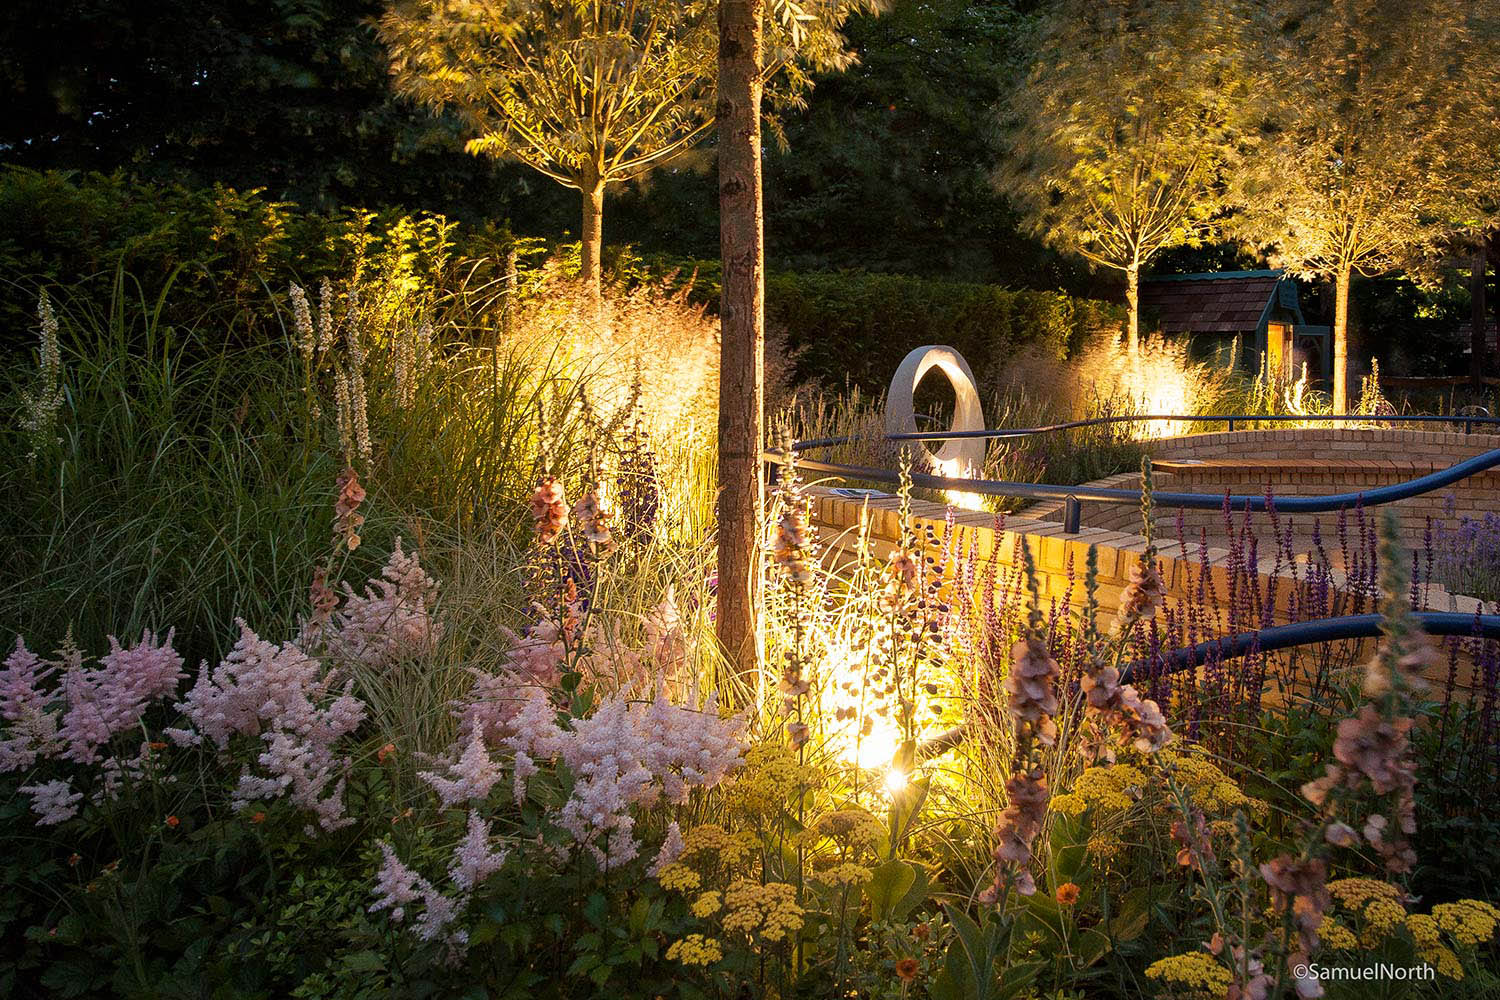 Rae Wilkinson Show Garden with evening lighting. Rae Wilkinson Garden and Landscape Design - Garden Designer Sussex, Surrey, London, South-East England